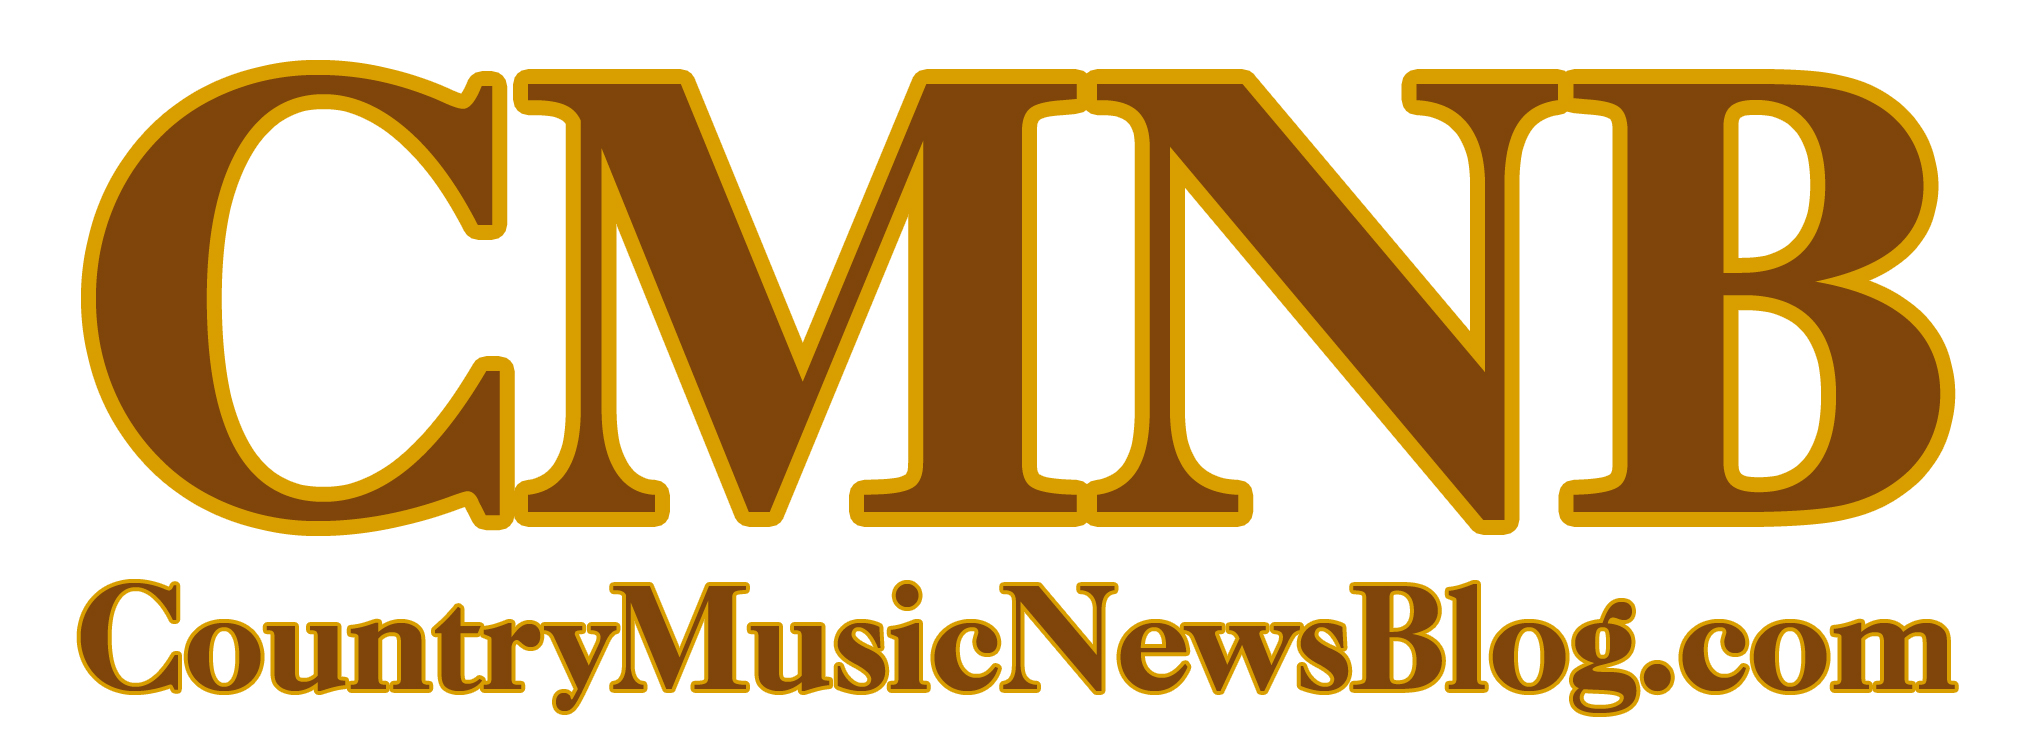 Country Music News Blog | CMNB